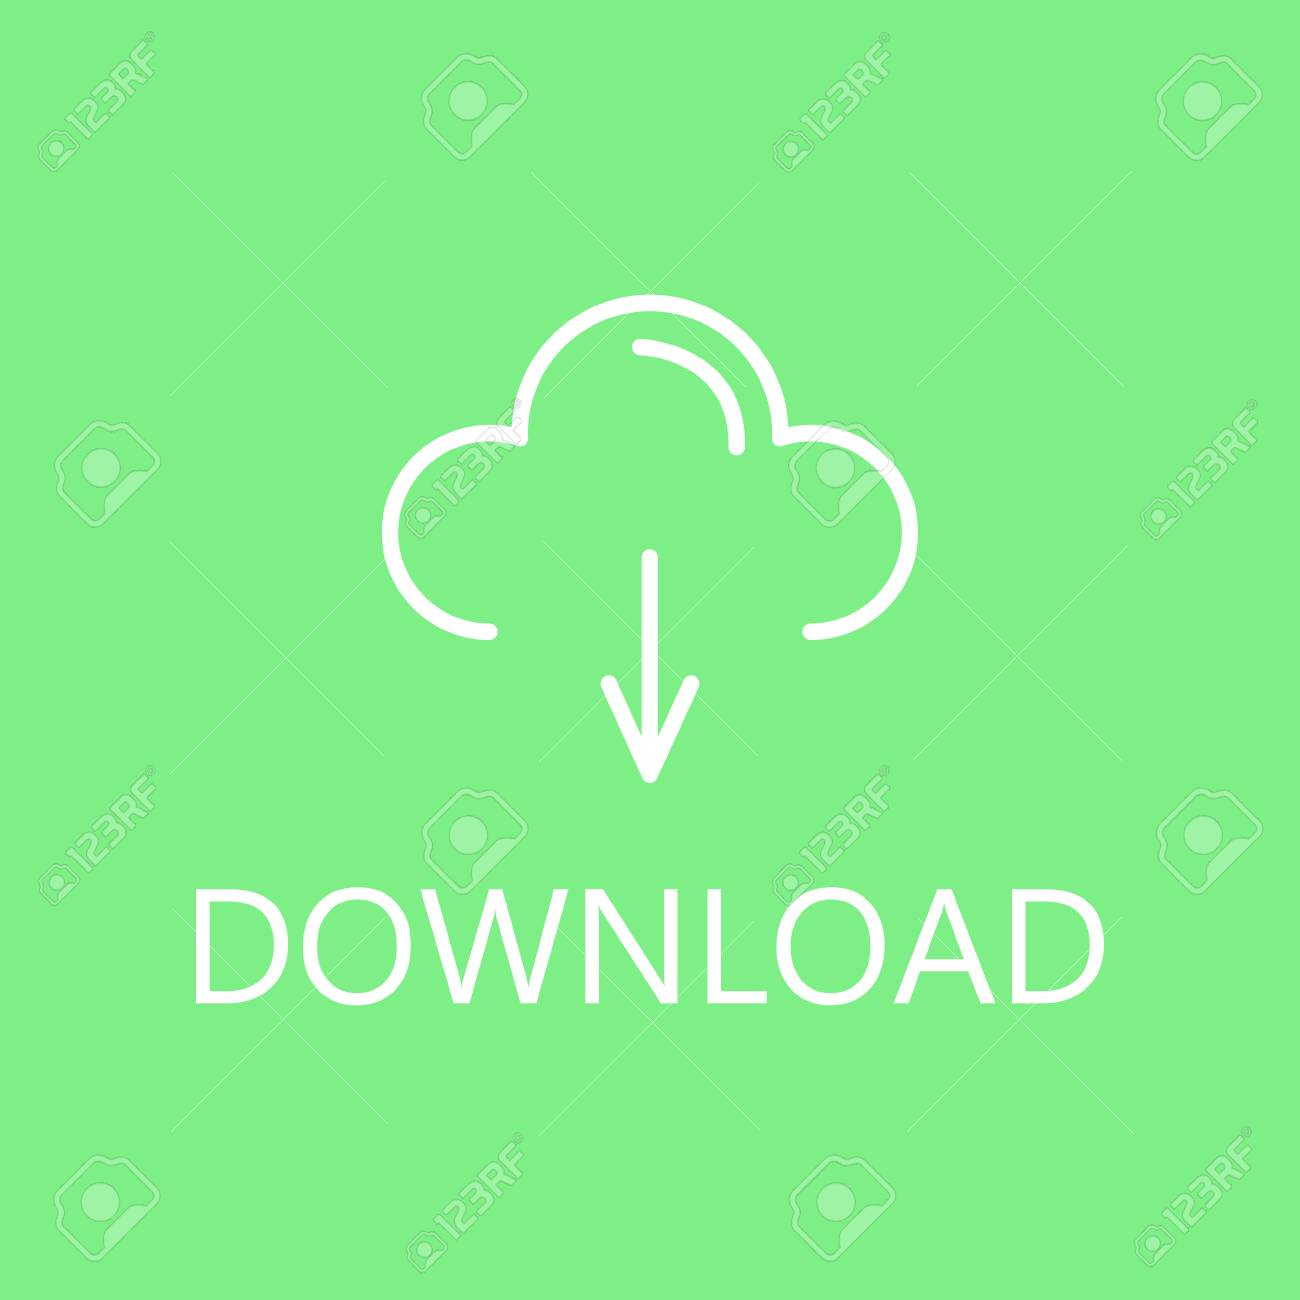 Download, linear icon  Web download line icon  High quality outline